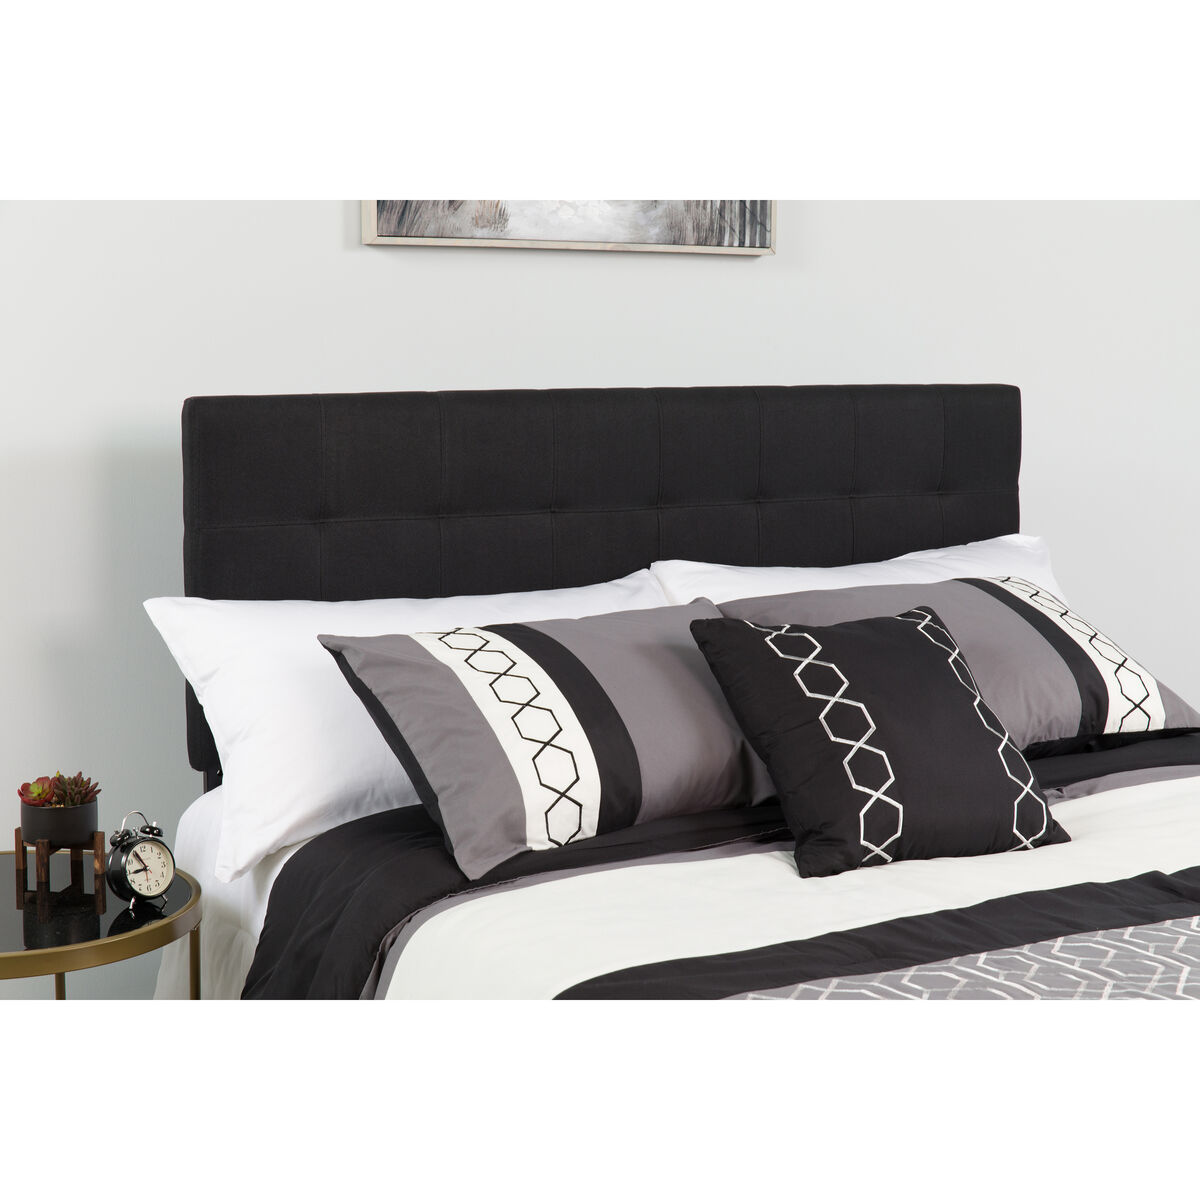 Our bedford tufted upholstered king size headboard in black fabric is on sale now